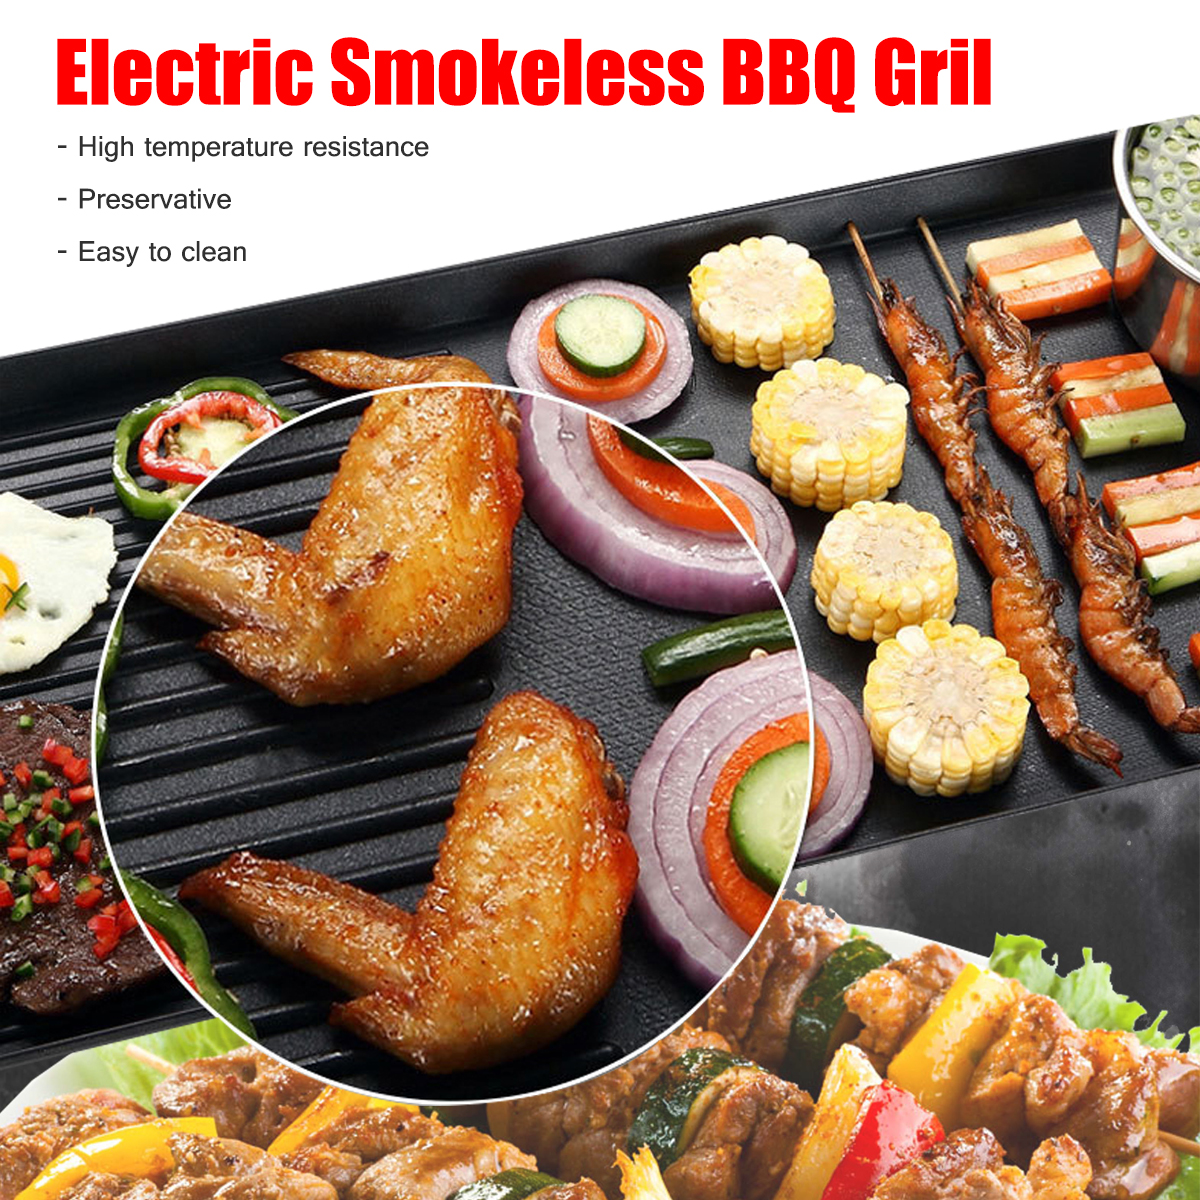 220V Kitchen Electric BBQ Grill Teppanyaki Non stick Surface Hot Plate 1500W Adjustable Temperature Incredibly Versatile